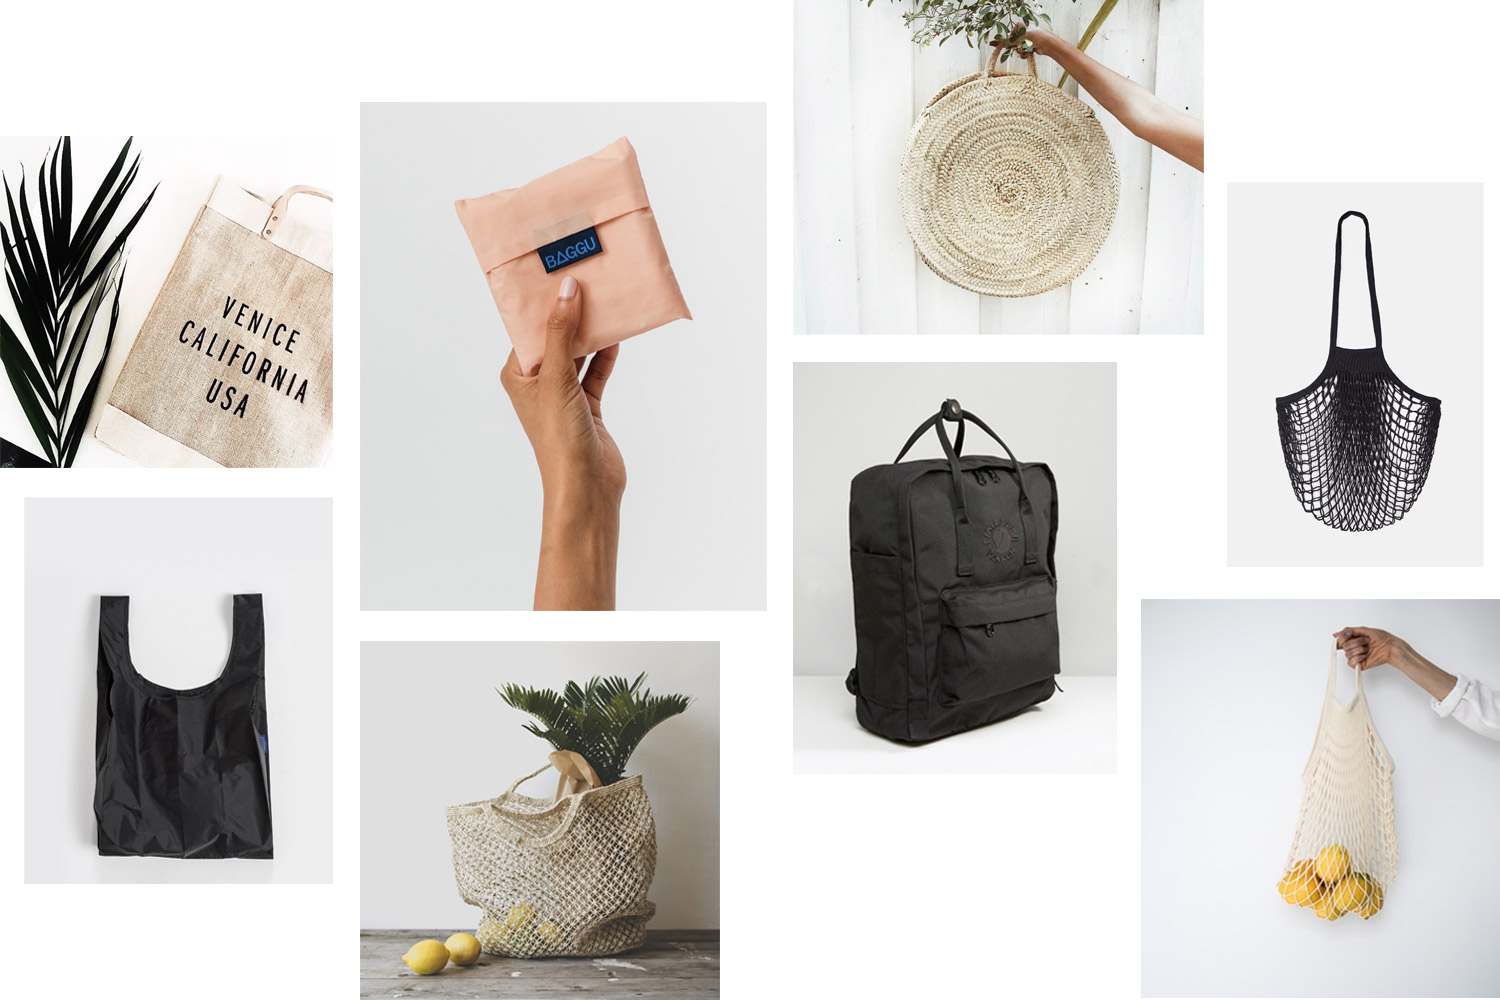 f232dc38d746 10 Shopping Bags to Use Instead of Ordinary Plastic